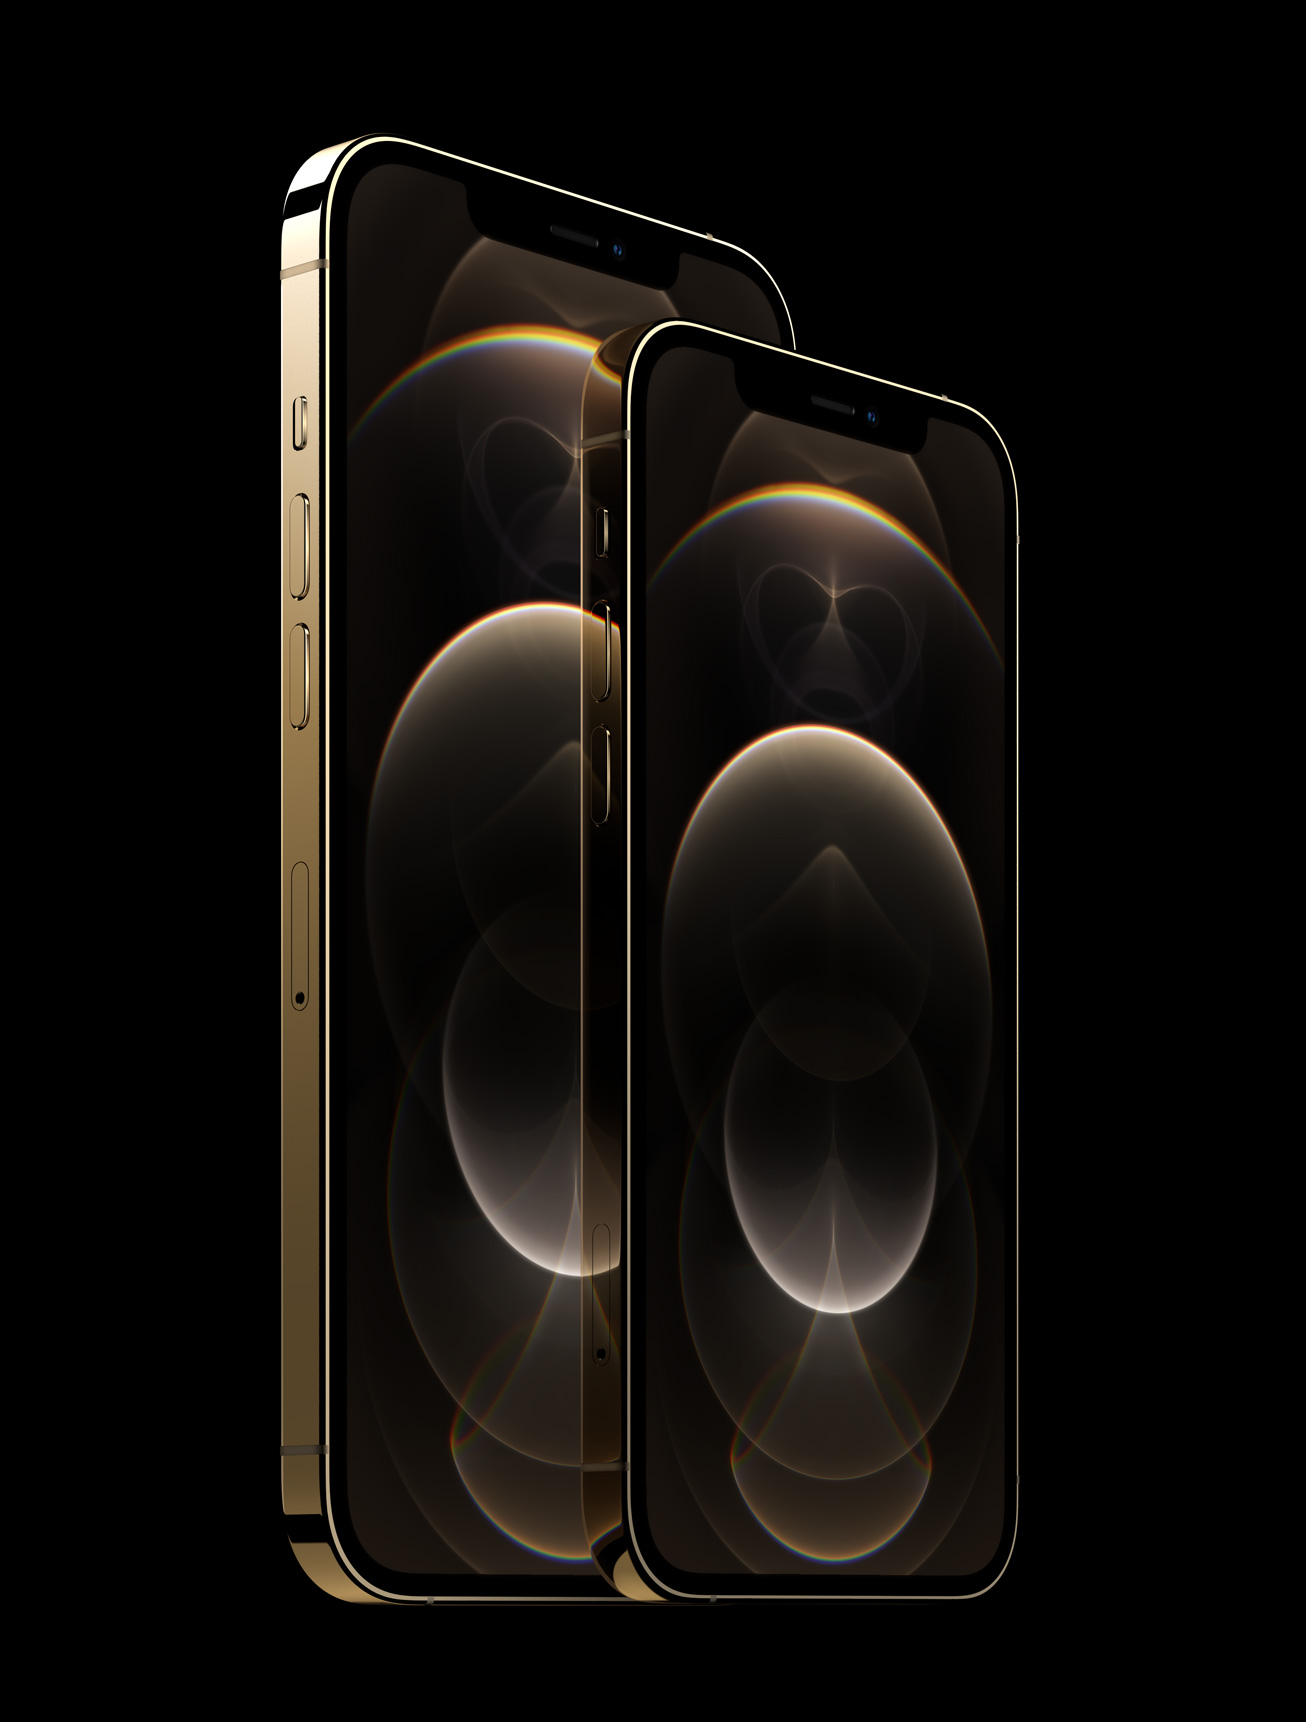 Apple_iphone12pro-stainless-steel-gold_10132020.jpg